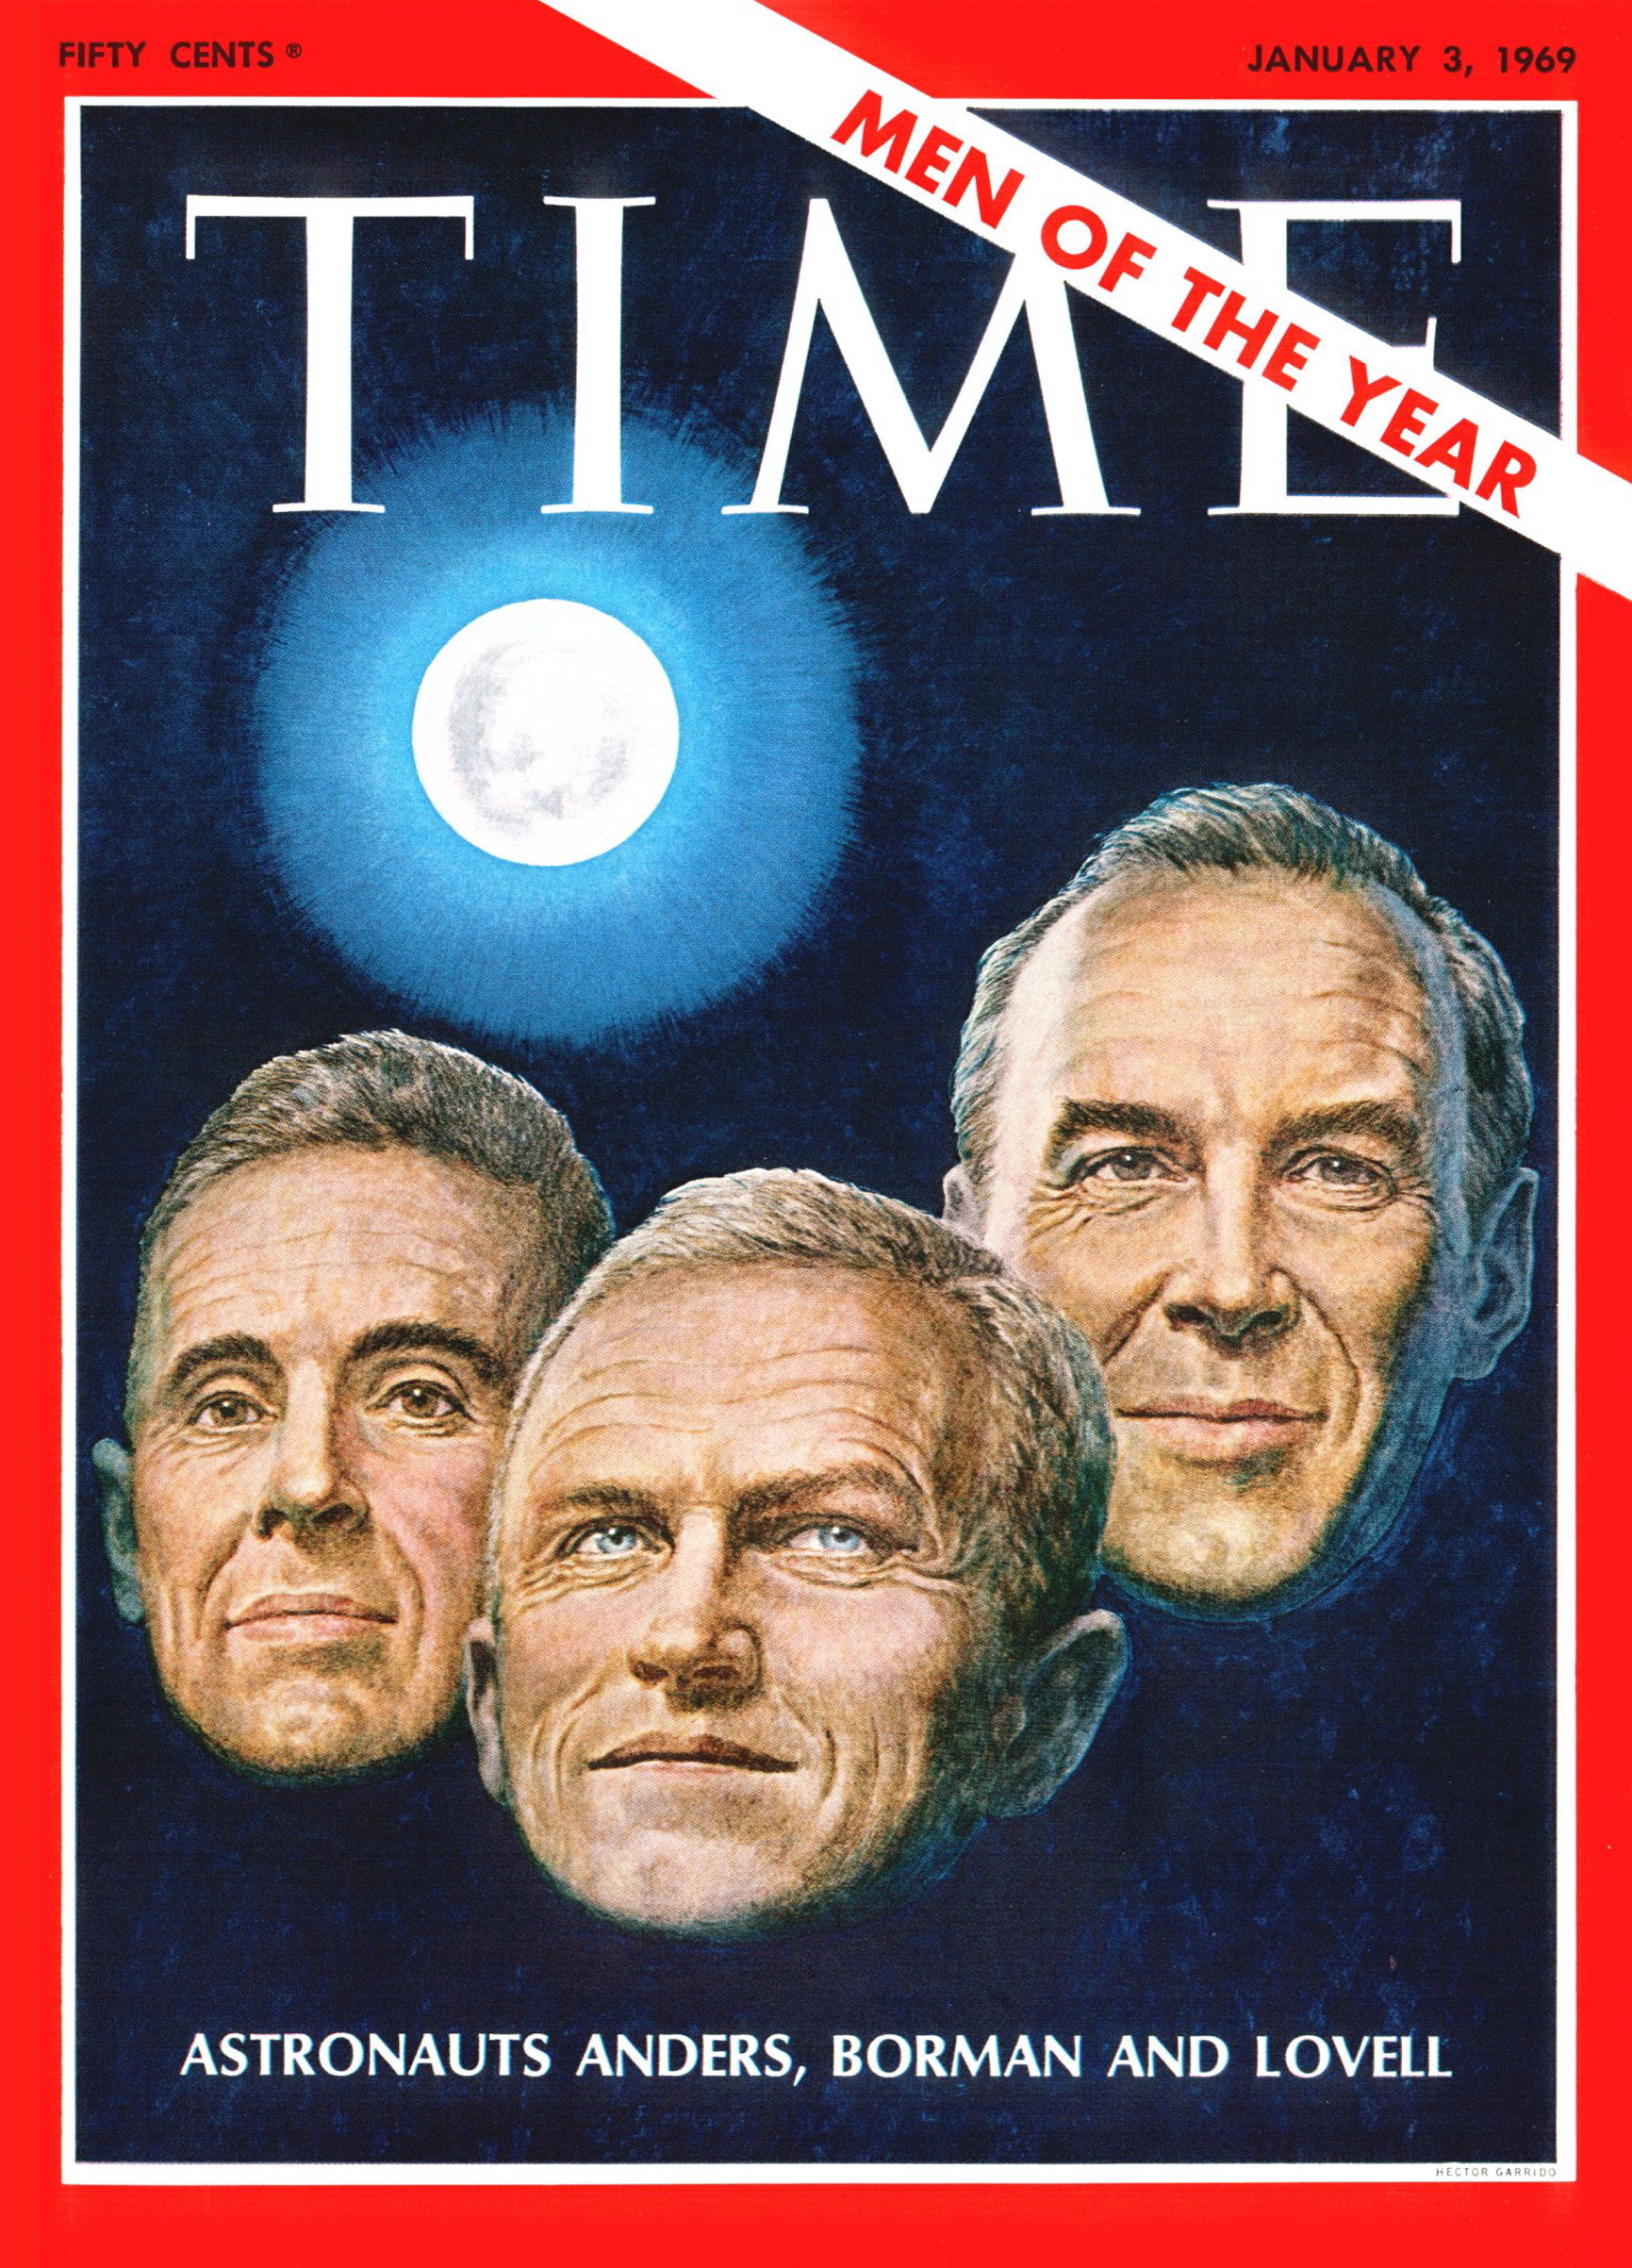 Fifty years ago, Apollo 8 astronauts Bill Anders, Frank Borman and Jim Lovell were a late but compelling choice for TIME's Men of the Year.